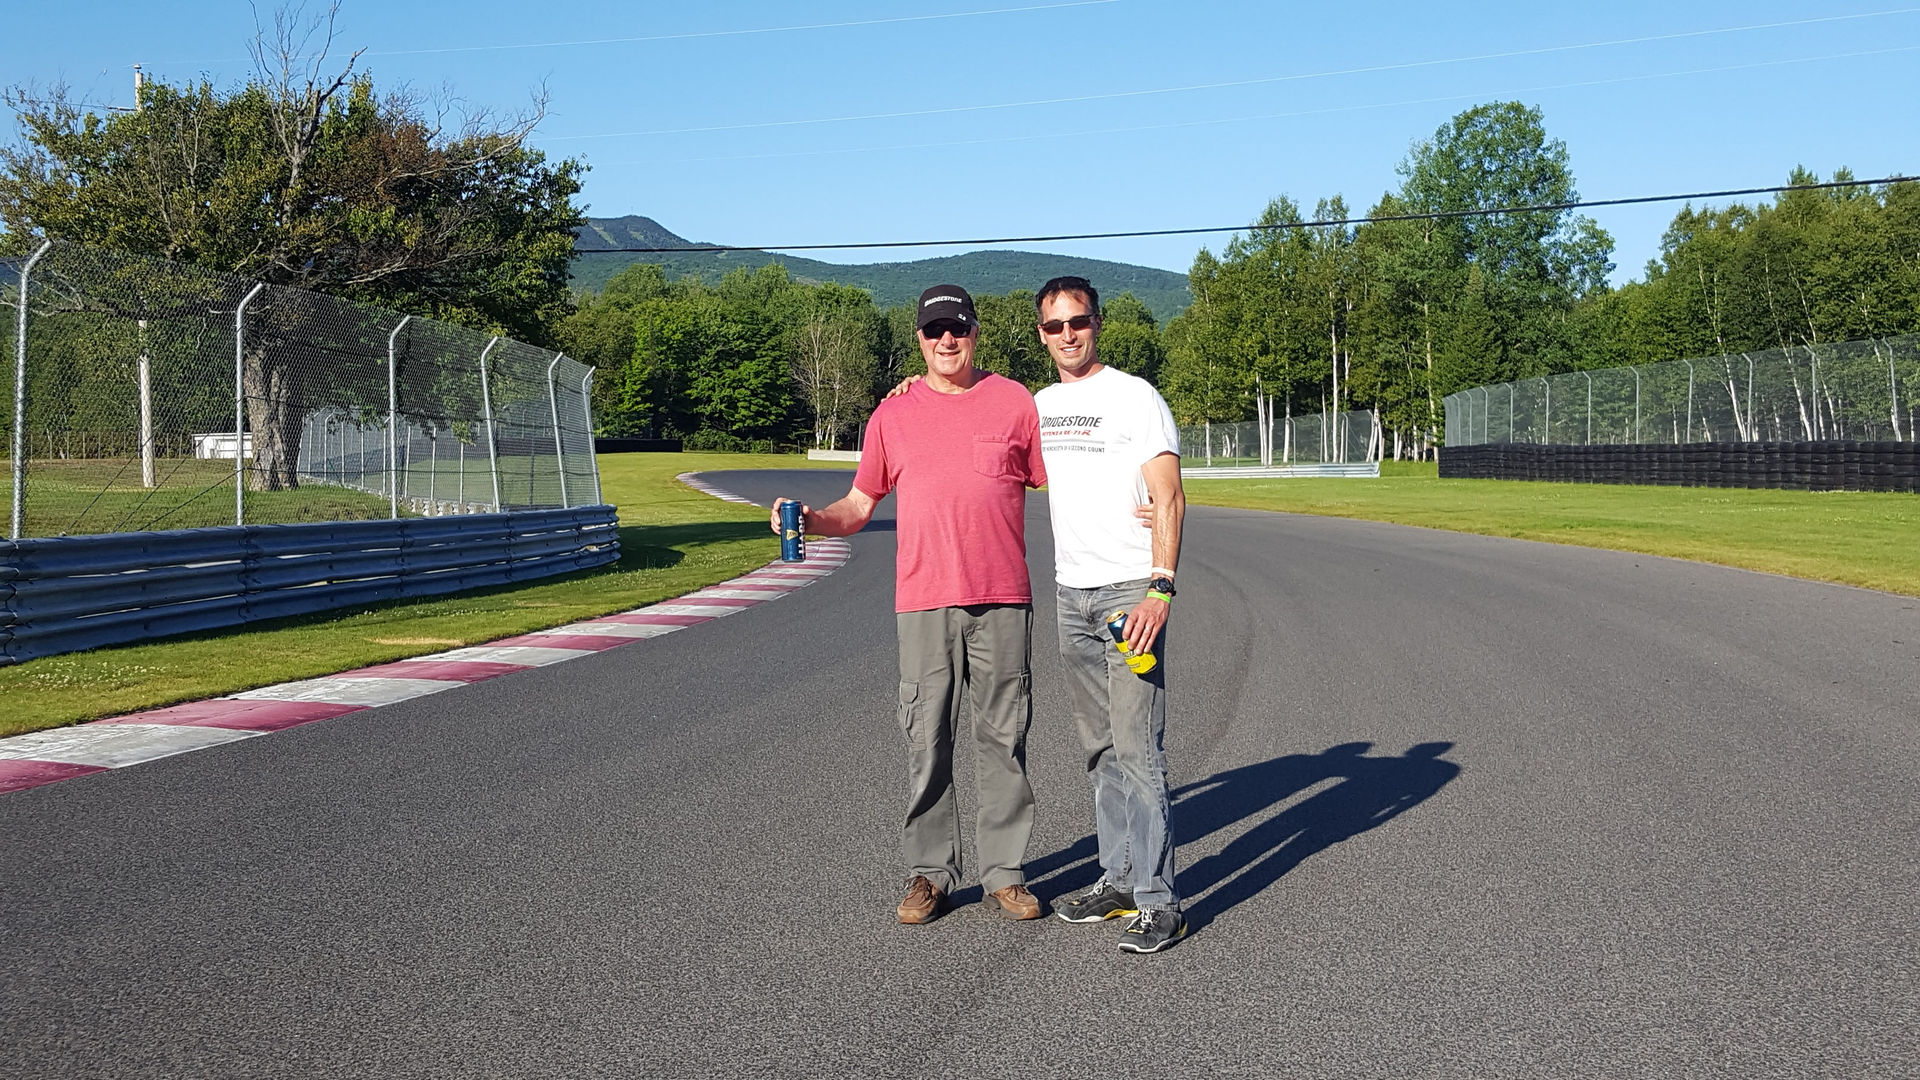 Brian and his Dad, Mnt. Tremblant Canada